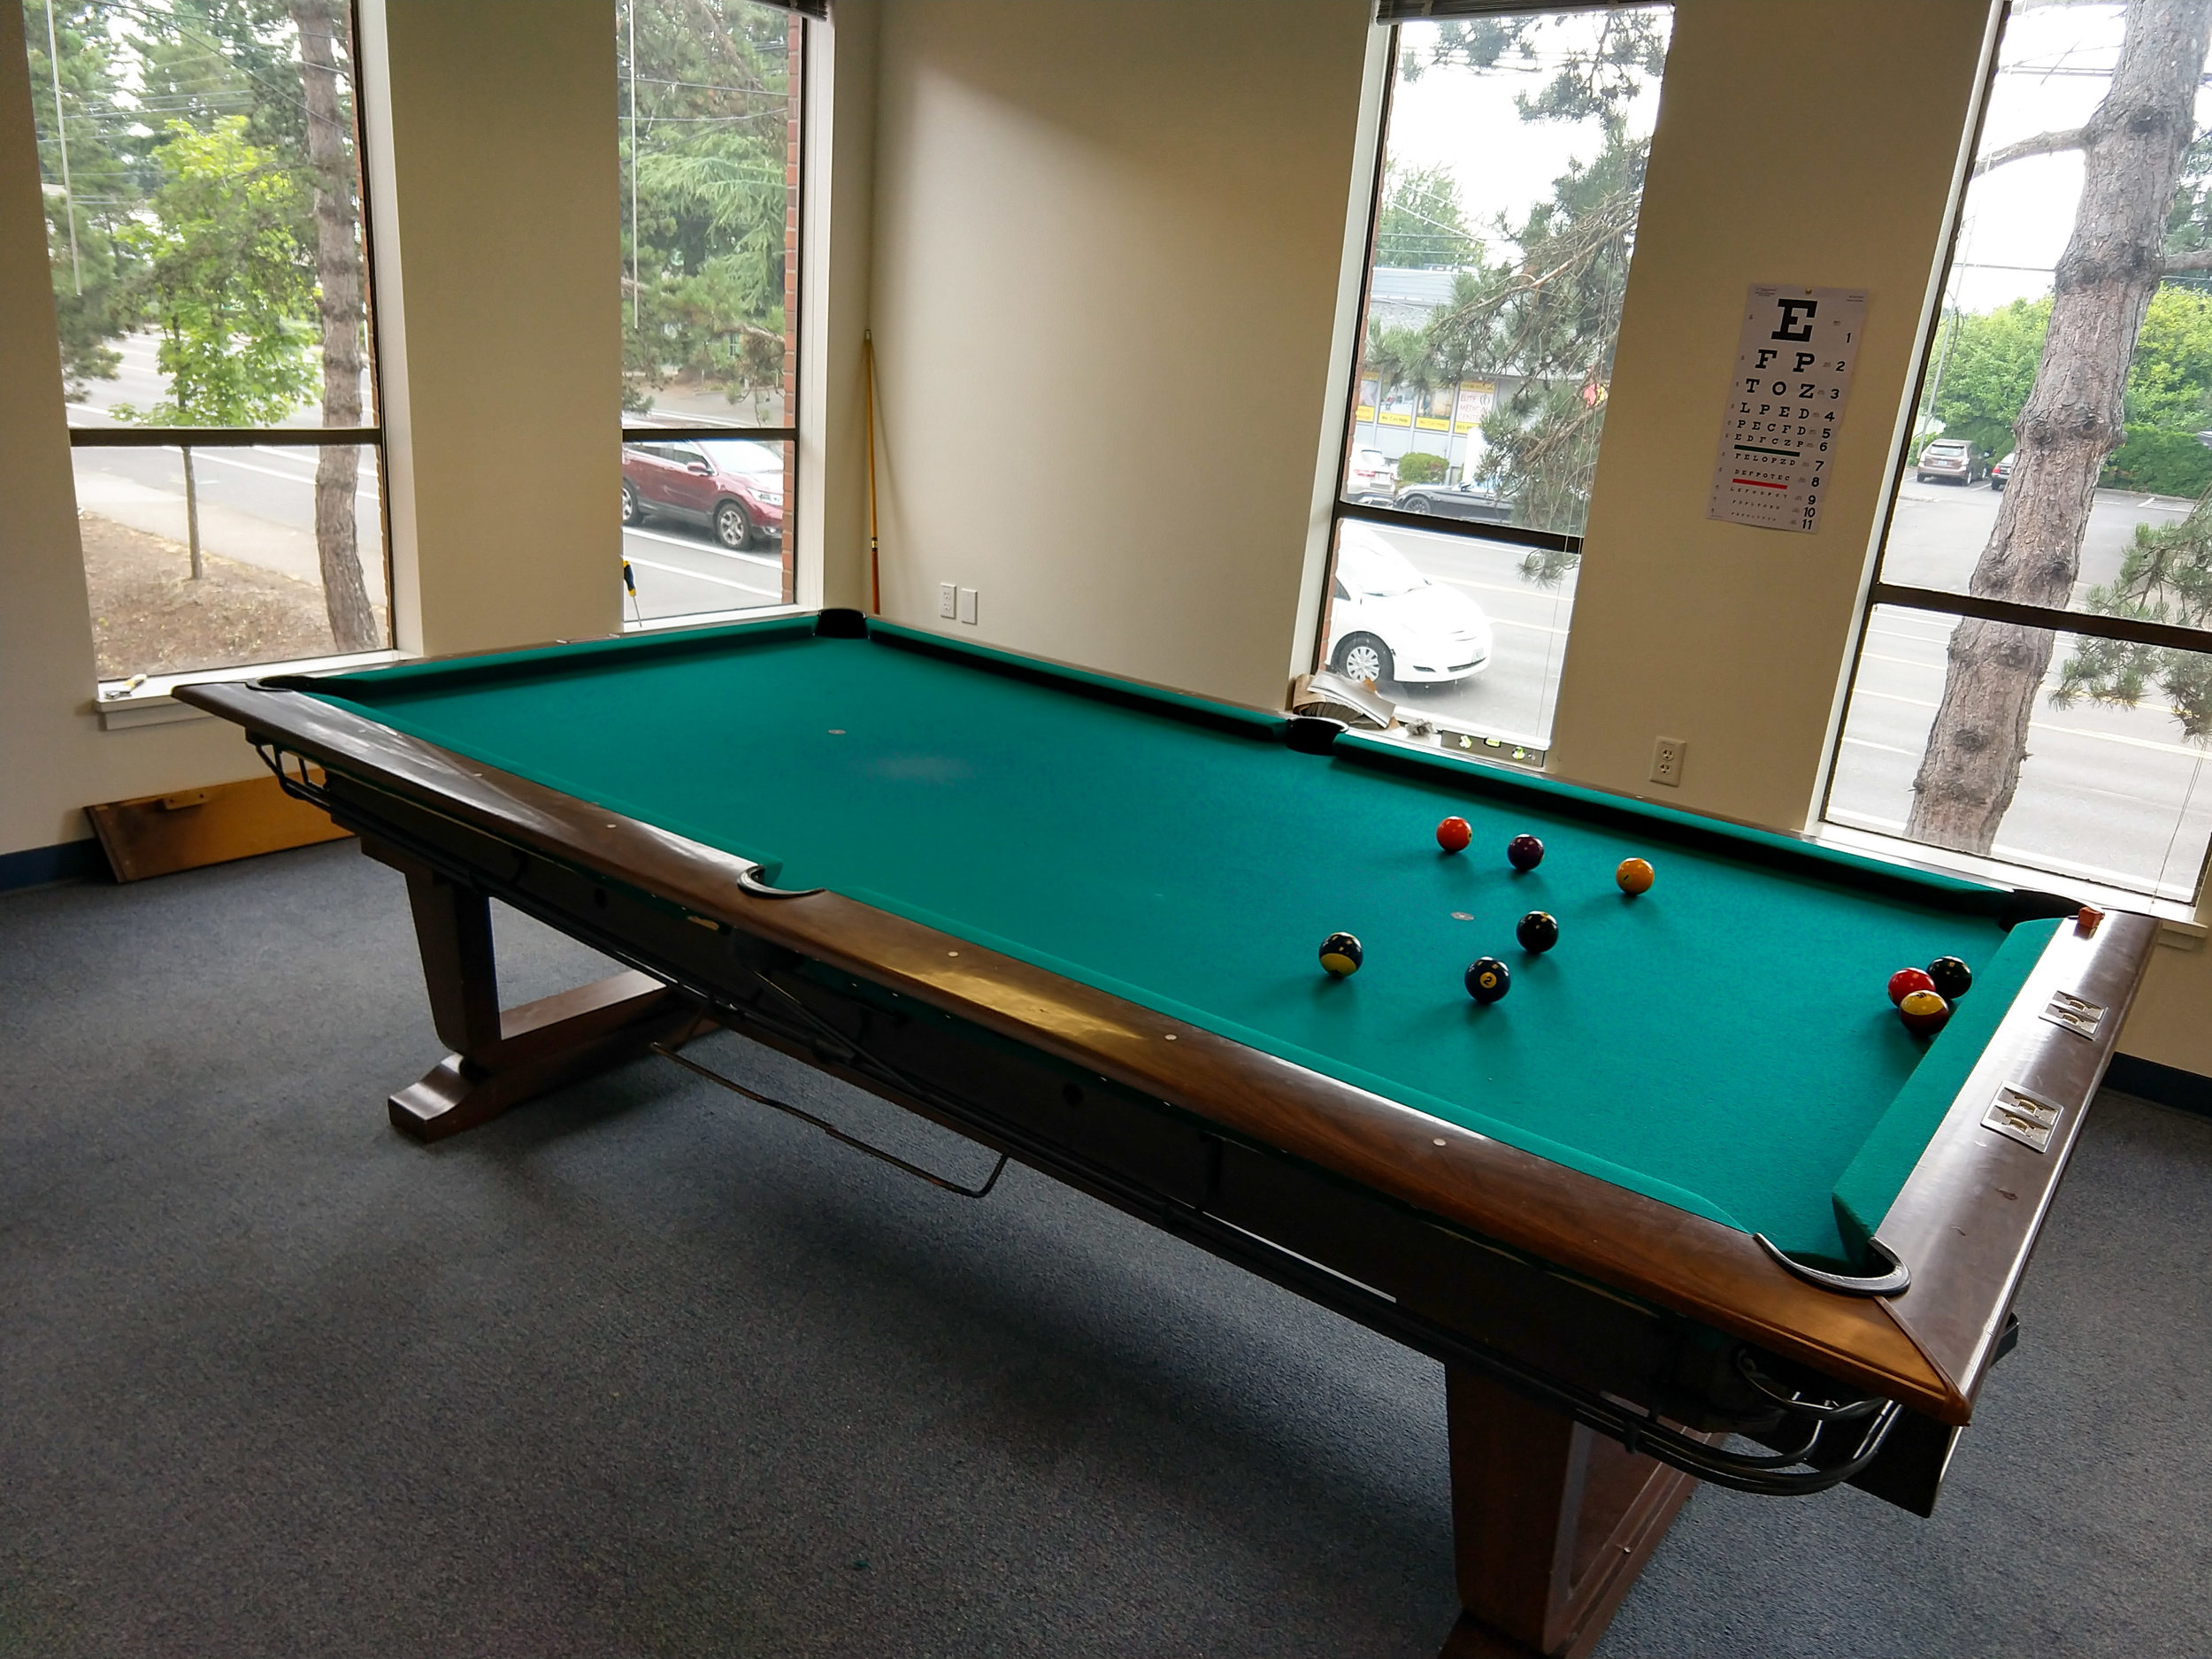 Not quite put back together all the way, but our new pool table at the Shelter